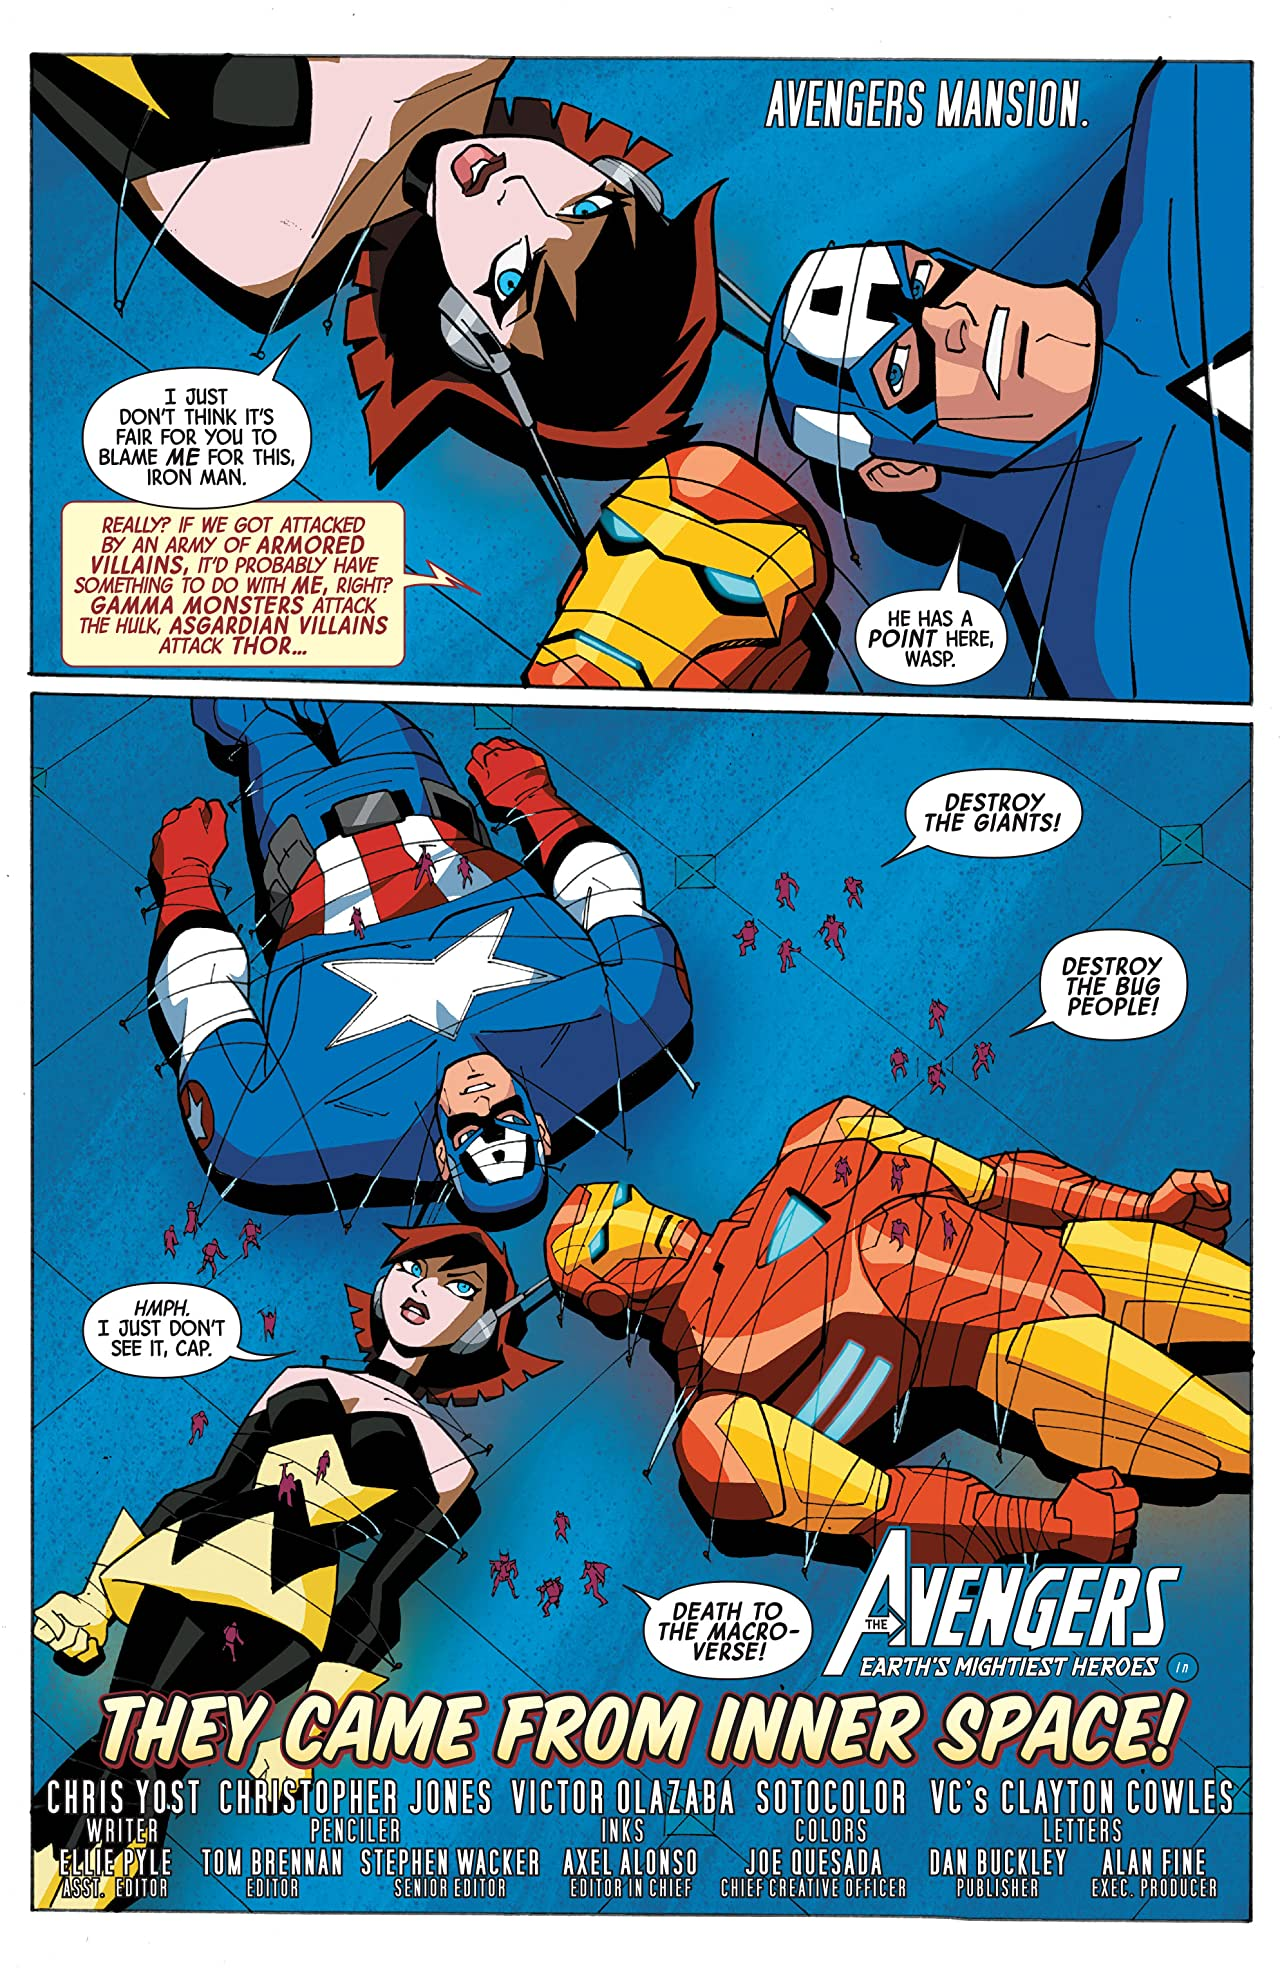 Marvel Universe Avengers: Earth's Mightiest Heroes (2012-2013) #7